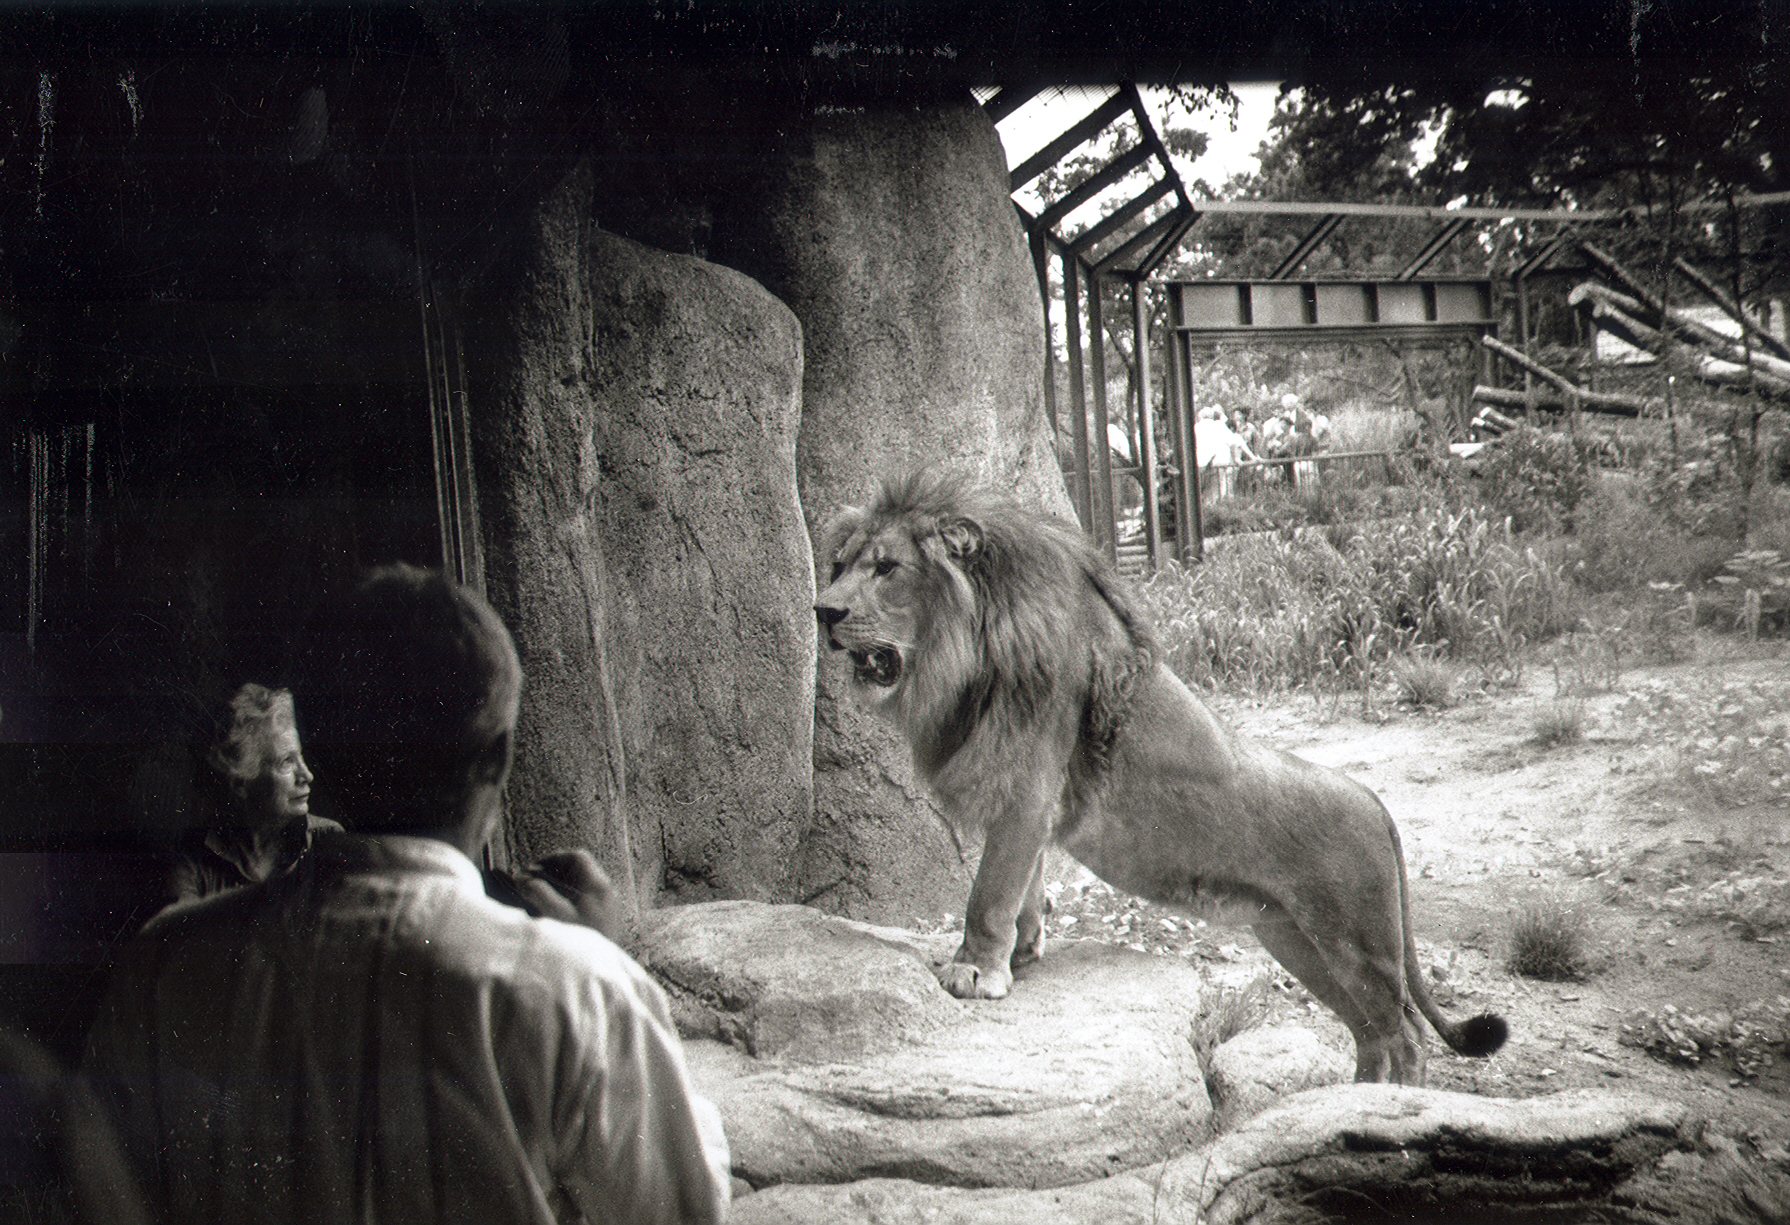 The original pride of lions featured a male, Samburu, and two females, Arusha and Manyara.